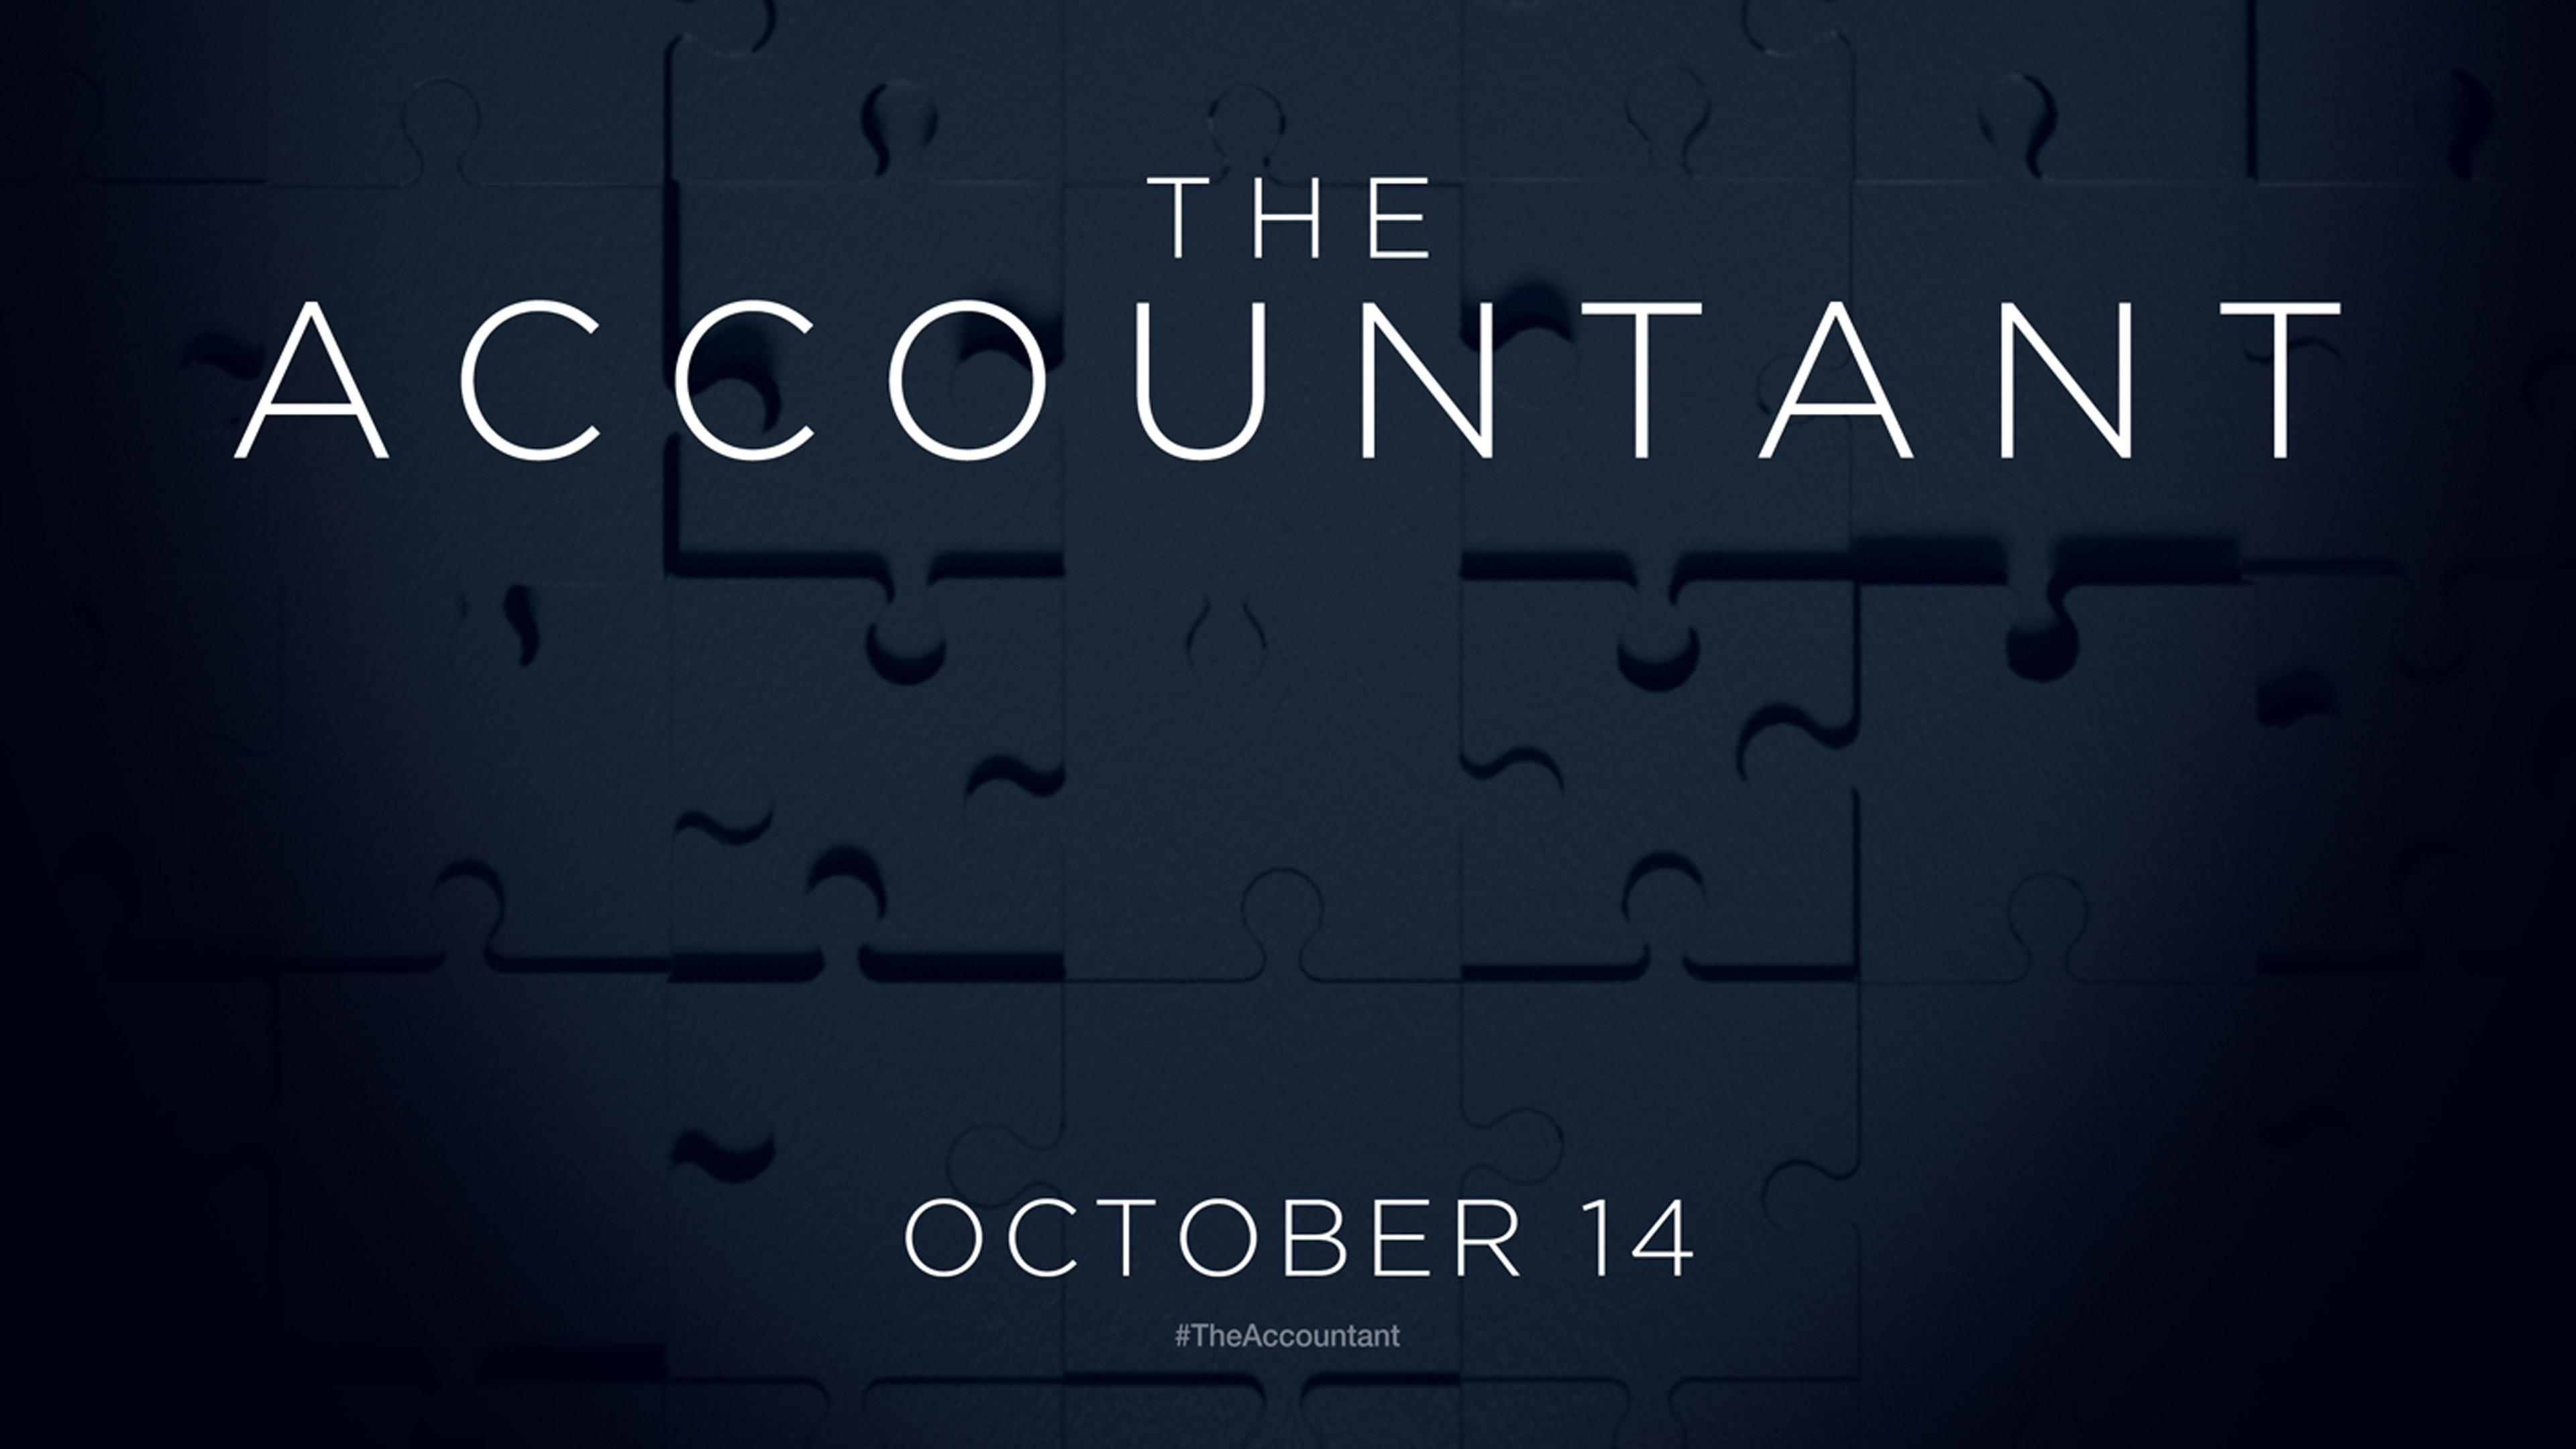 the accountant movie poster 2016 hd movies 4k wallpapers